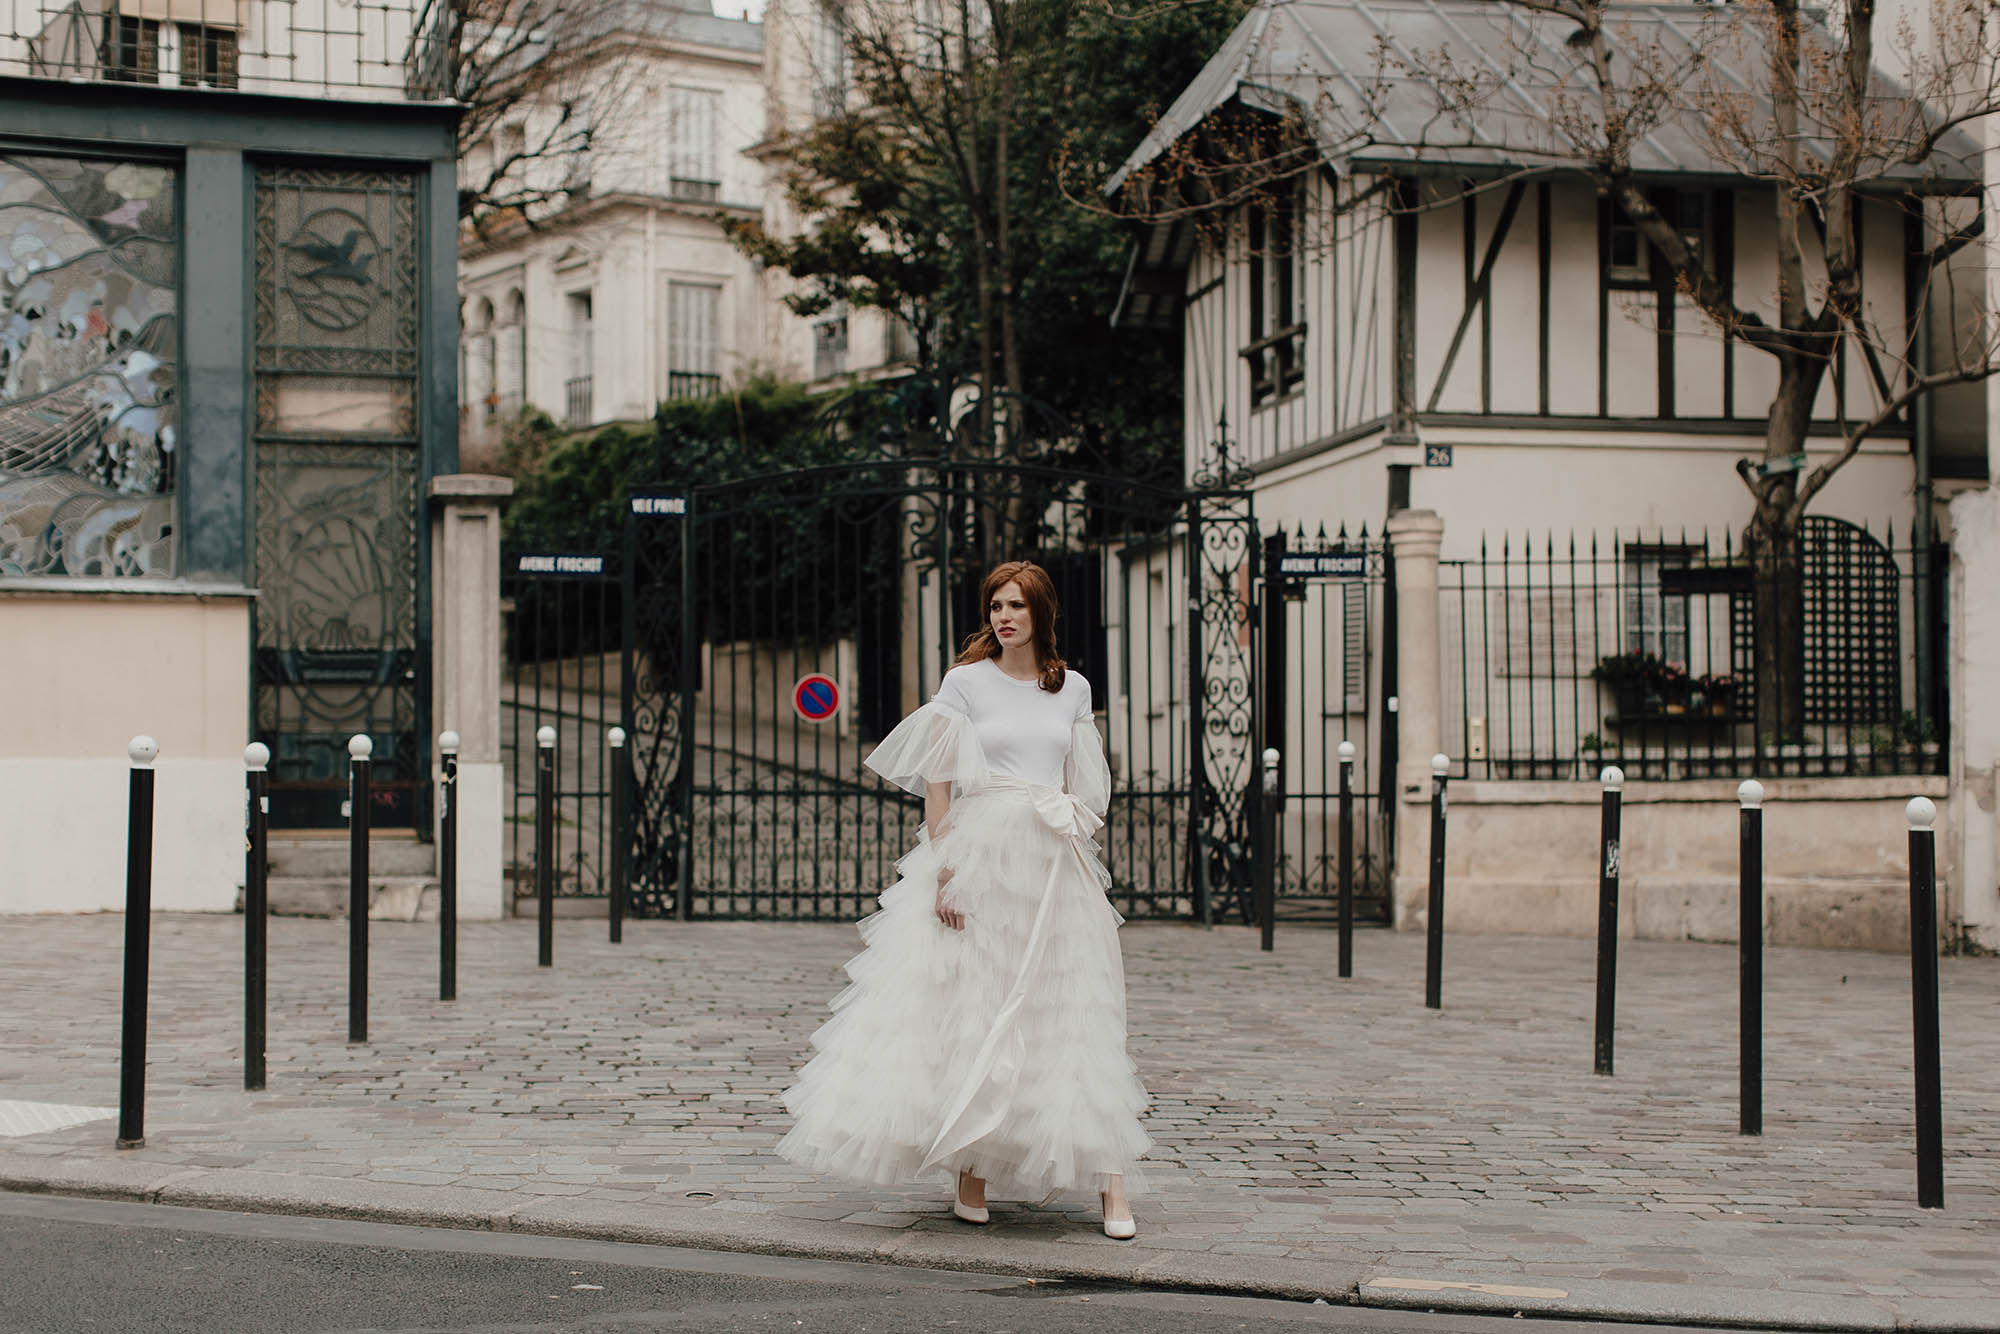 youmademydayphotography-destination-wedding-photographer-david-purves-boheme-rock-paris-web-144